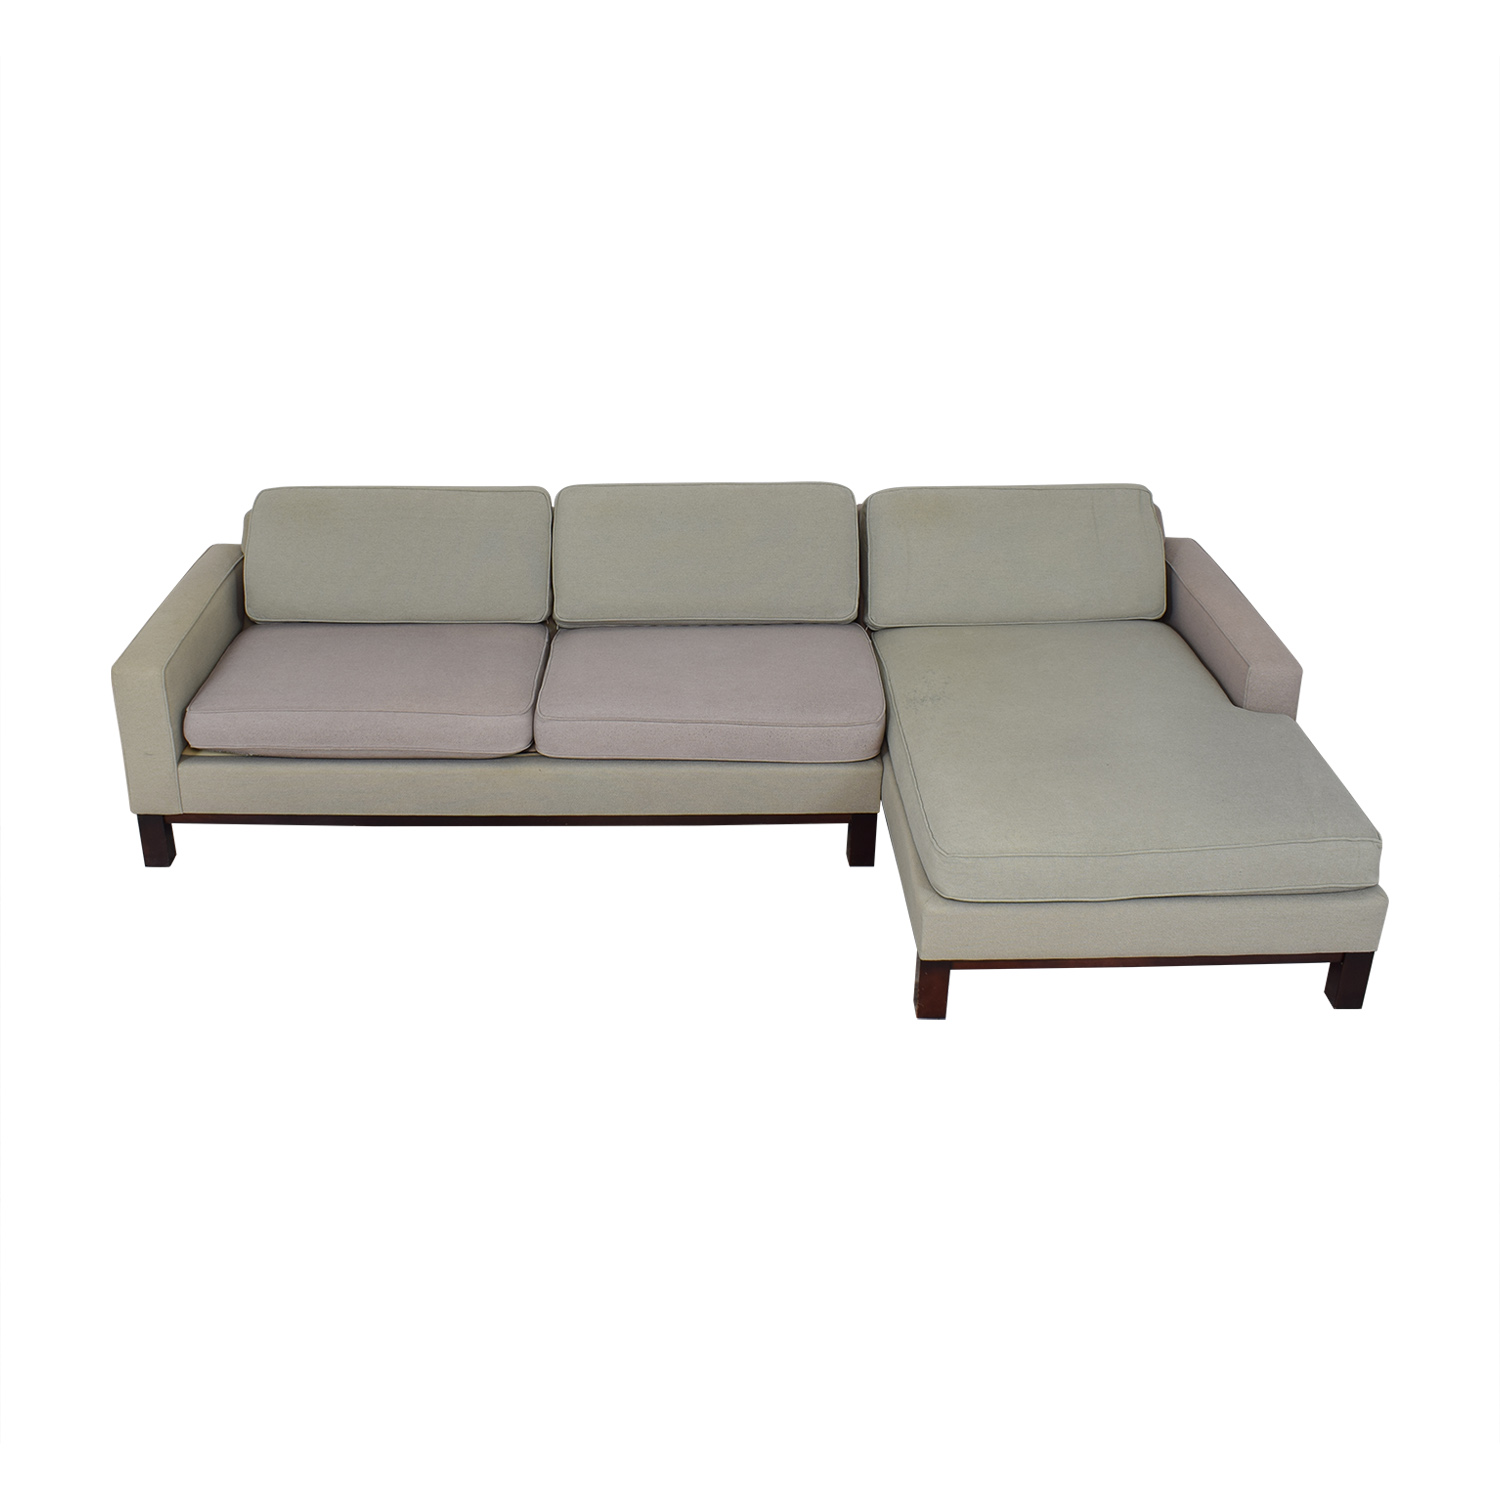 Room & Board Room & Board Chaise Sectional Sofa nj